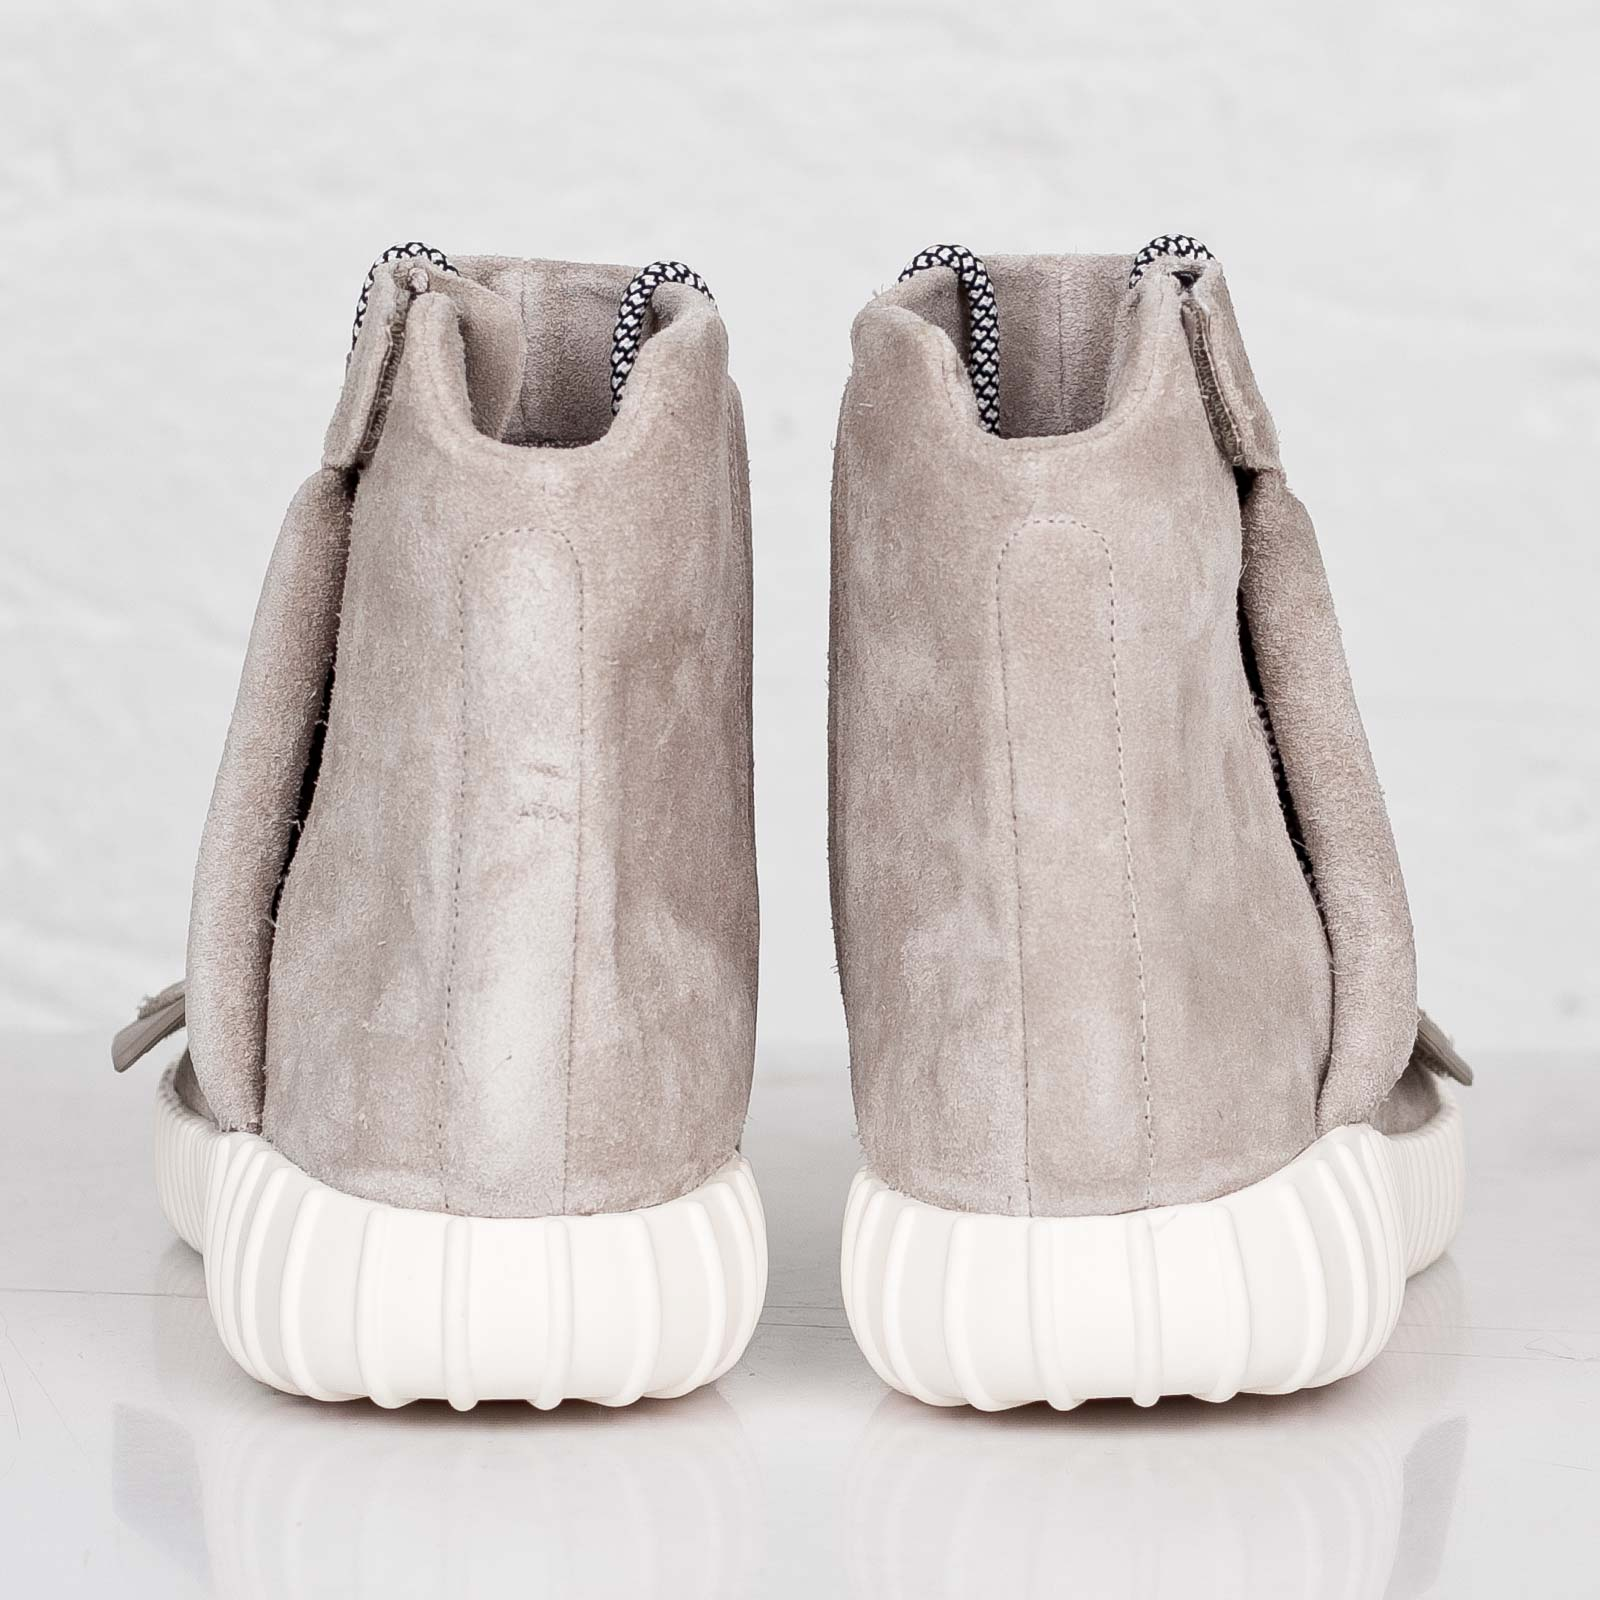 Adidas Yeezy 750 Boost x Kanye West - Kick Game